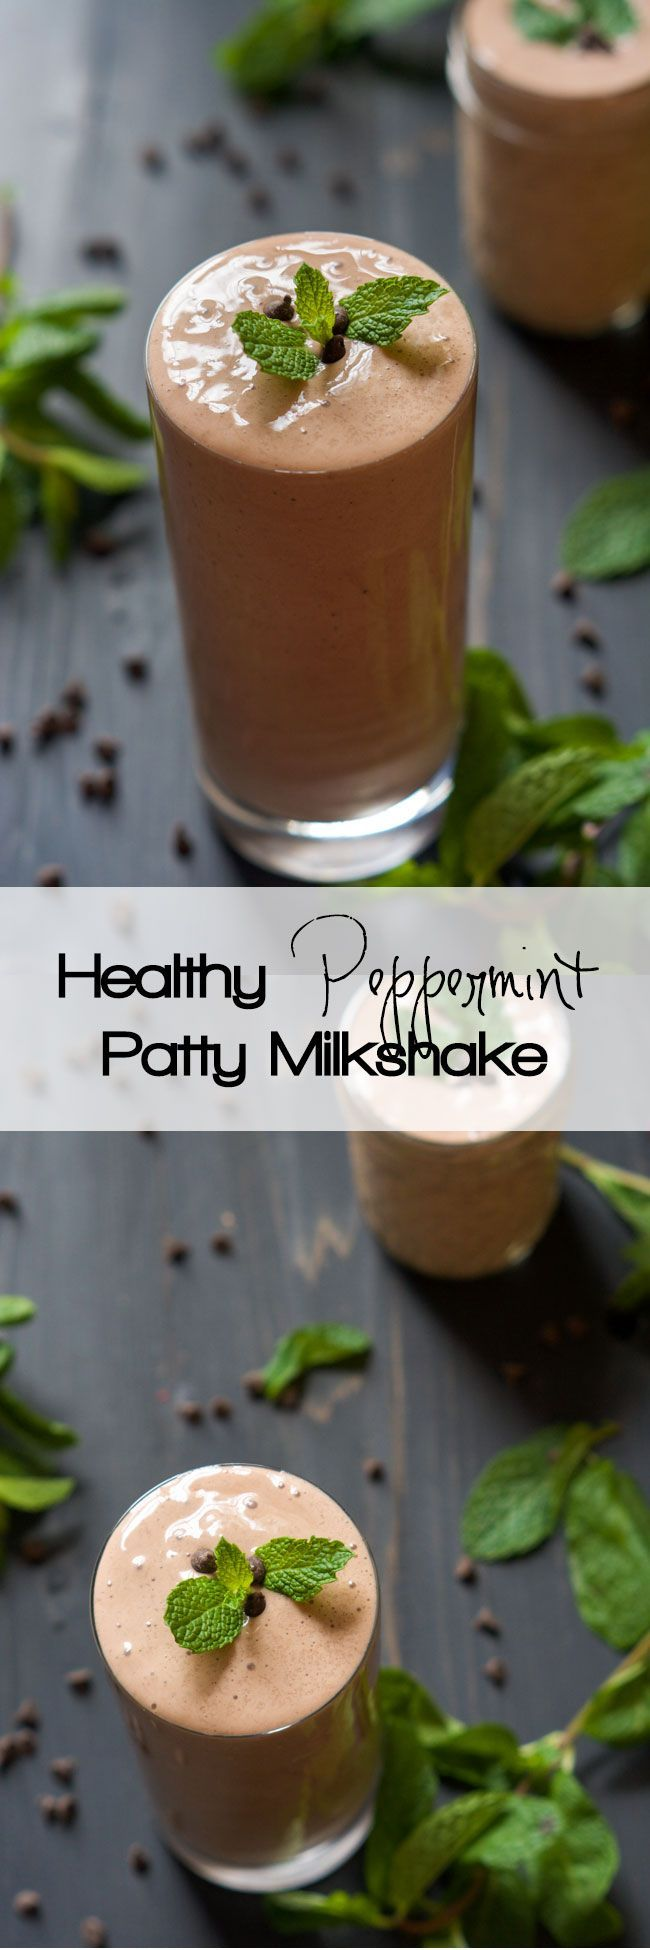 A dessert in a glass! This Skinny Peppermint Patty Shake is full of chocolate and mint! It is healthy enough for a high protein breakfast or quick snack!